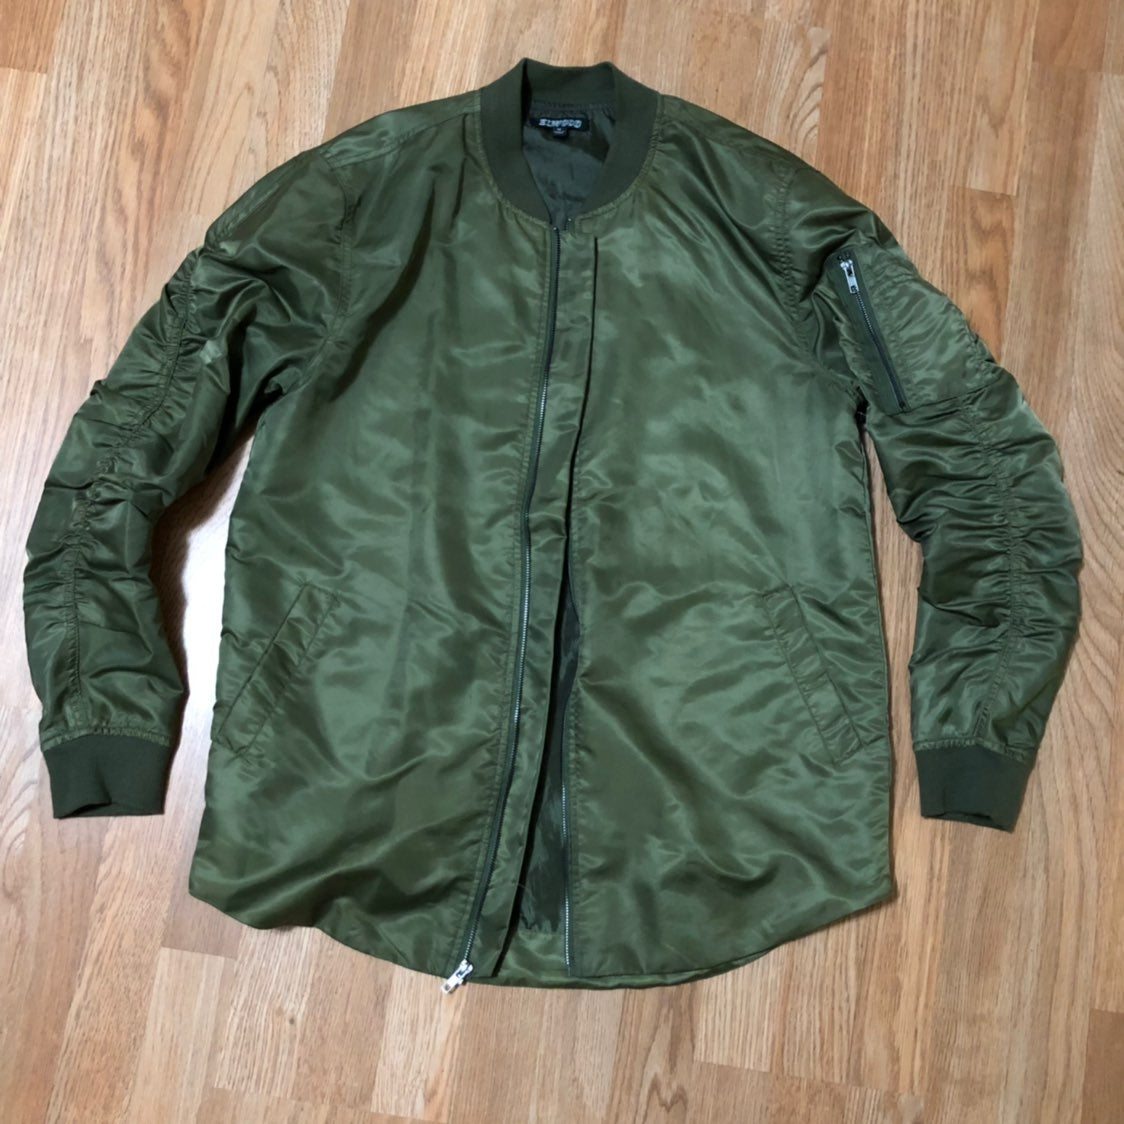 Elwood - Bomber Jacket - Medium